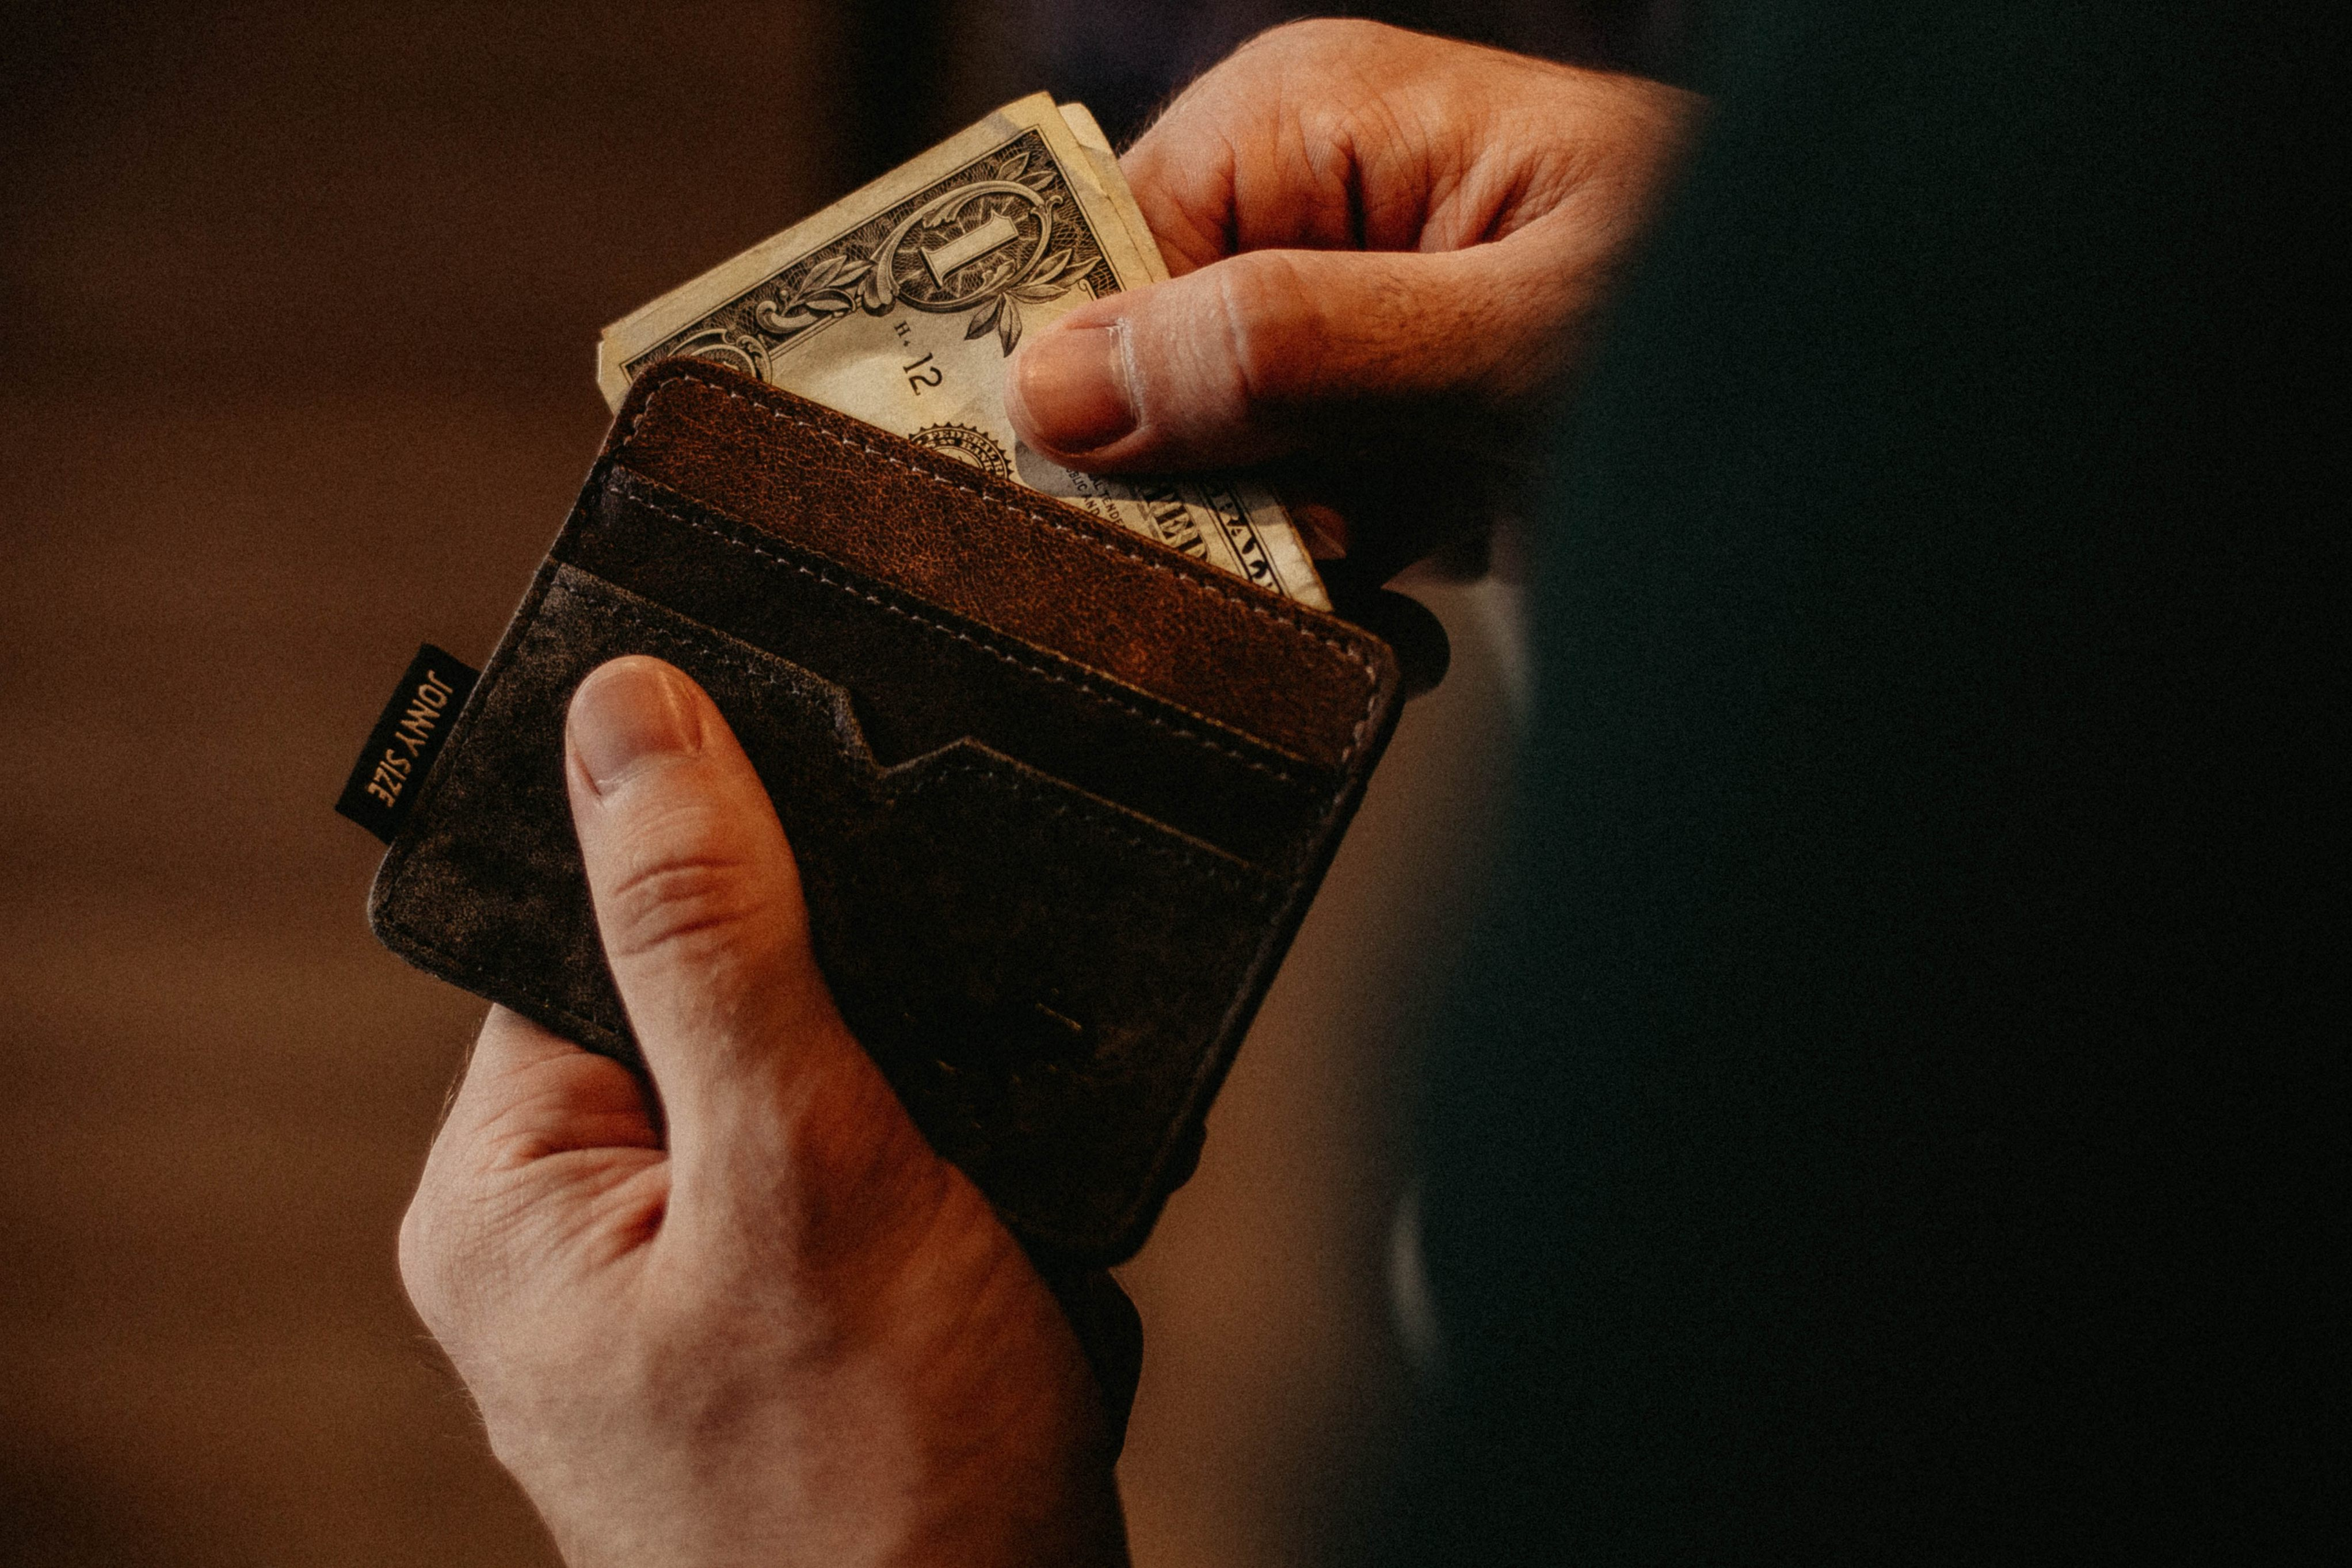 man-counting-money-to-pay-partner